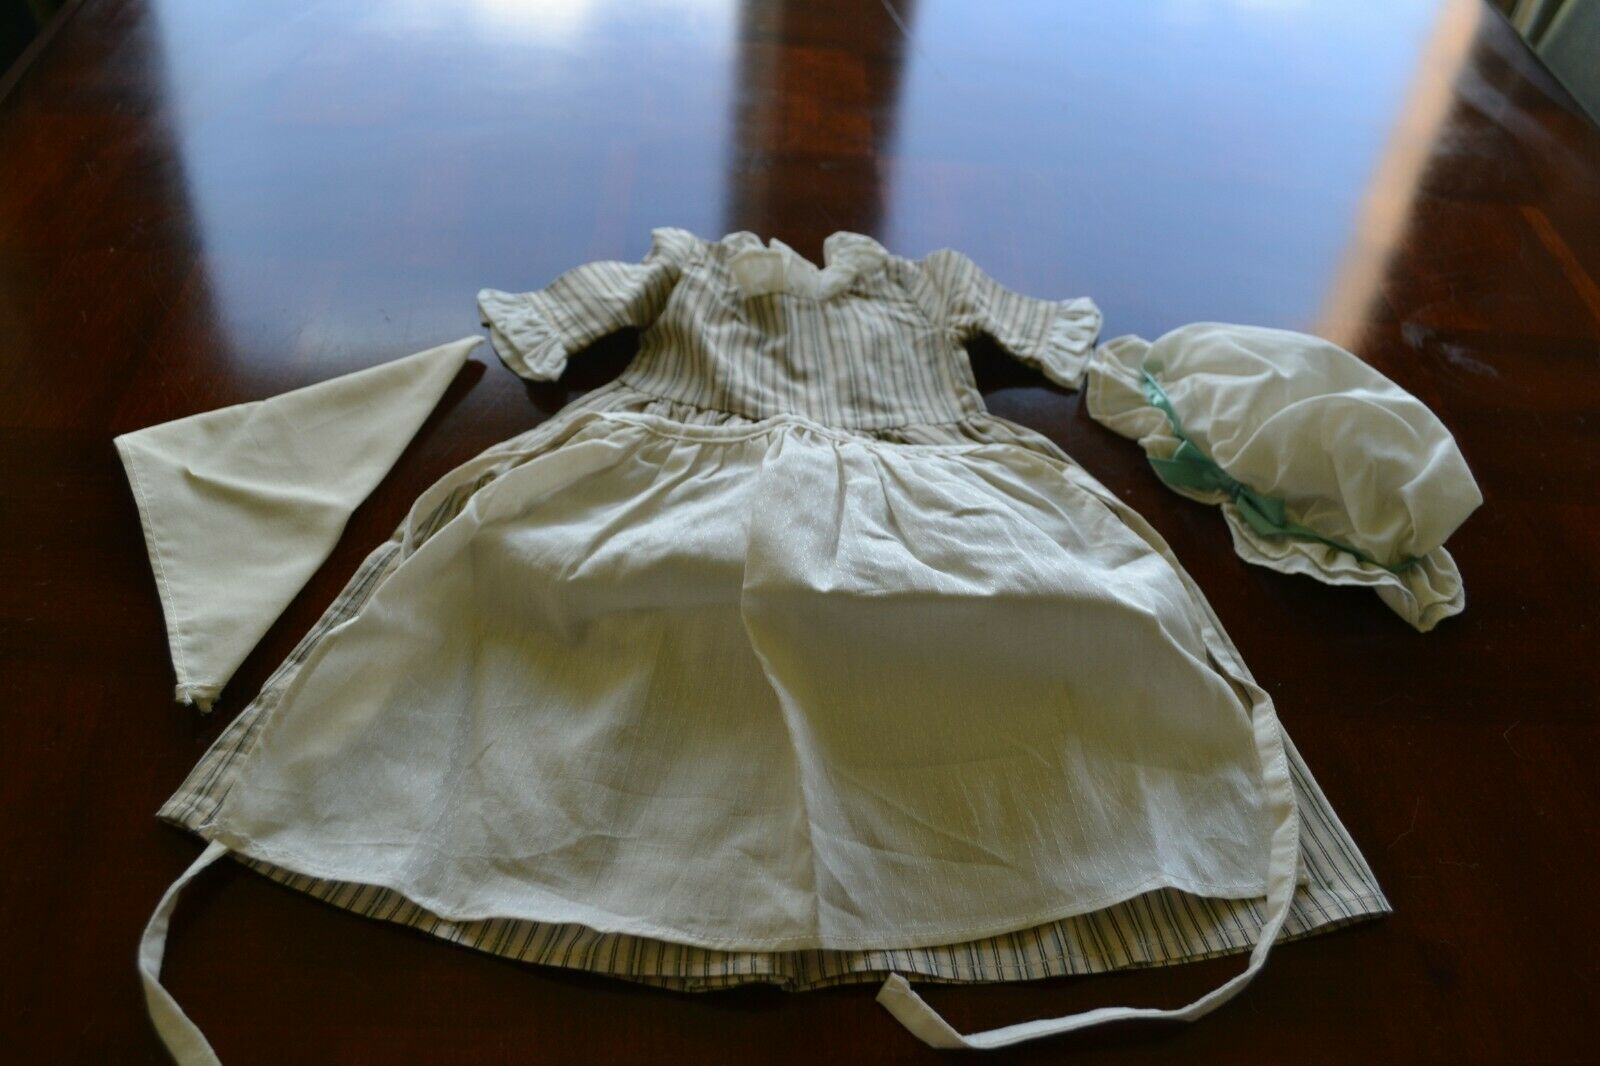 American Girl FeliStadt's Work Dress